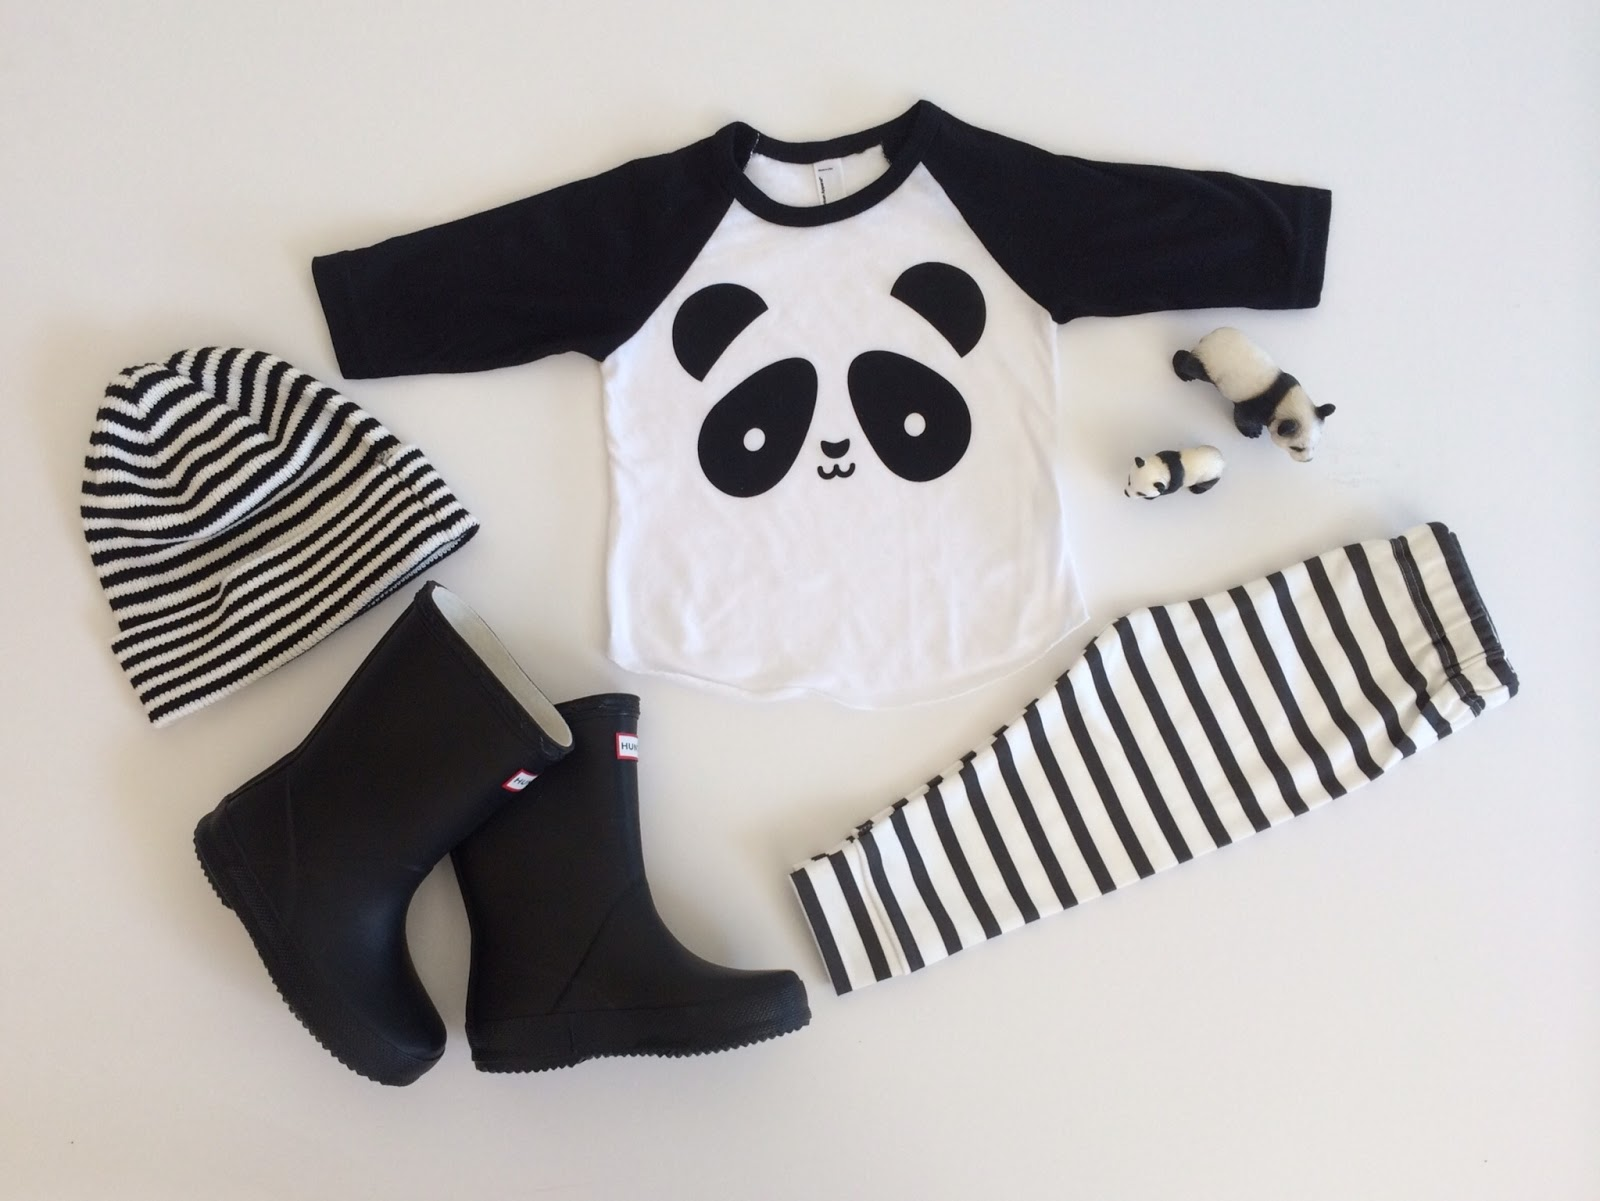 Australian Stockist Whistle and Flute Panda Tee